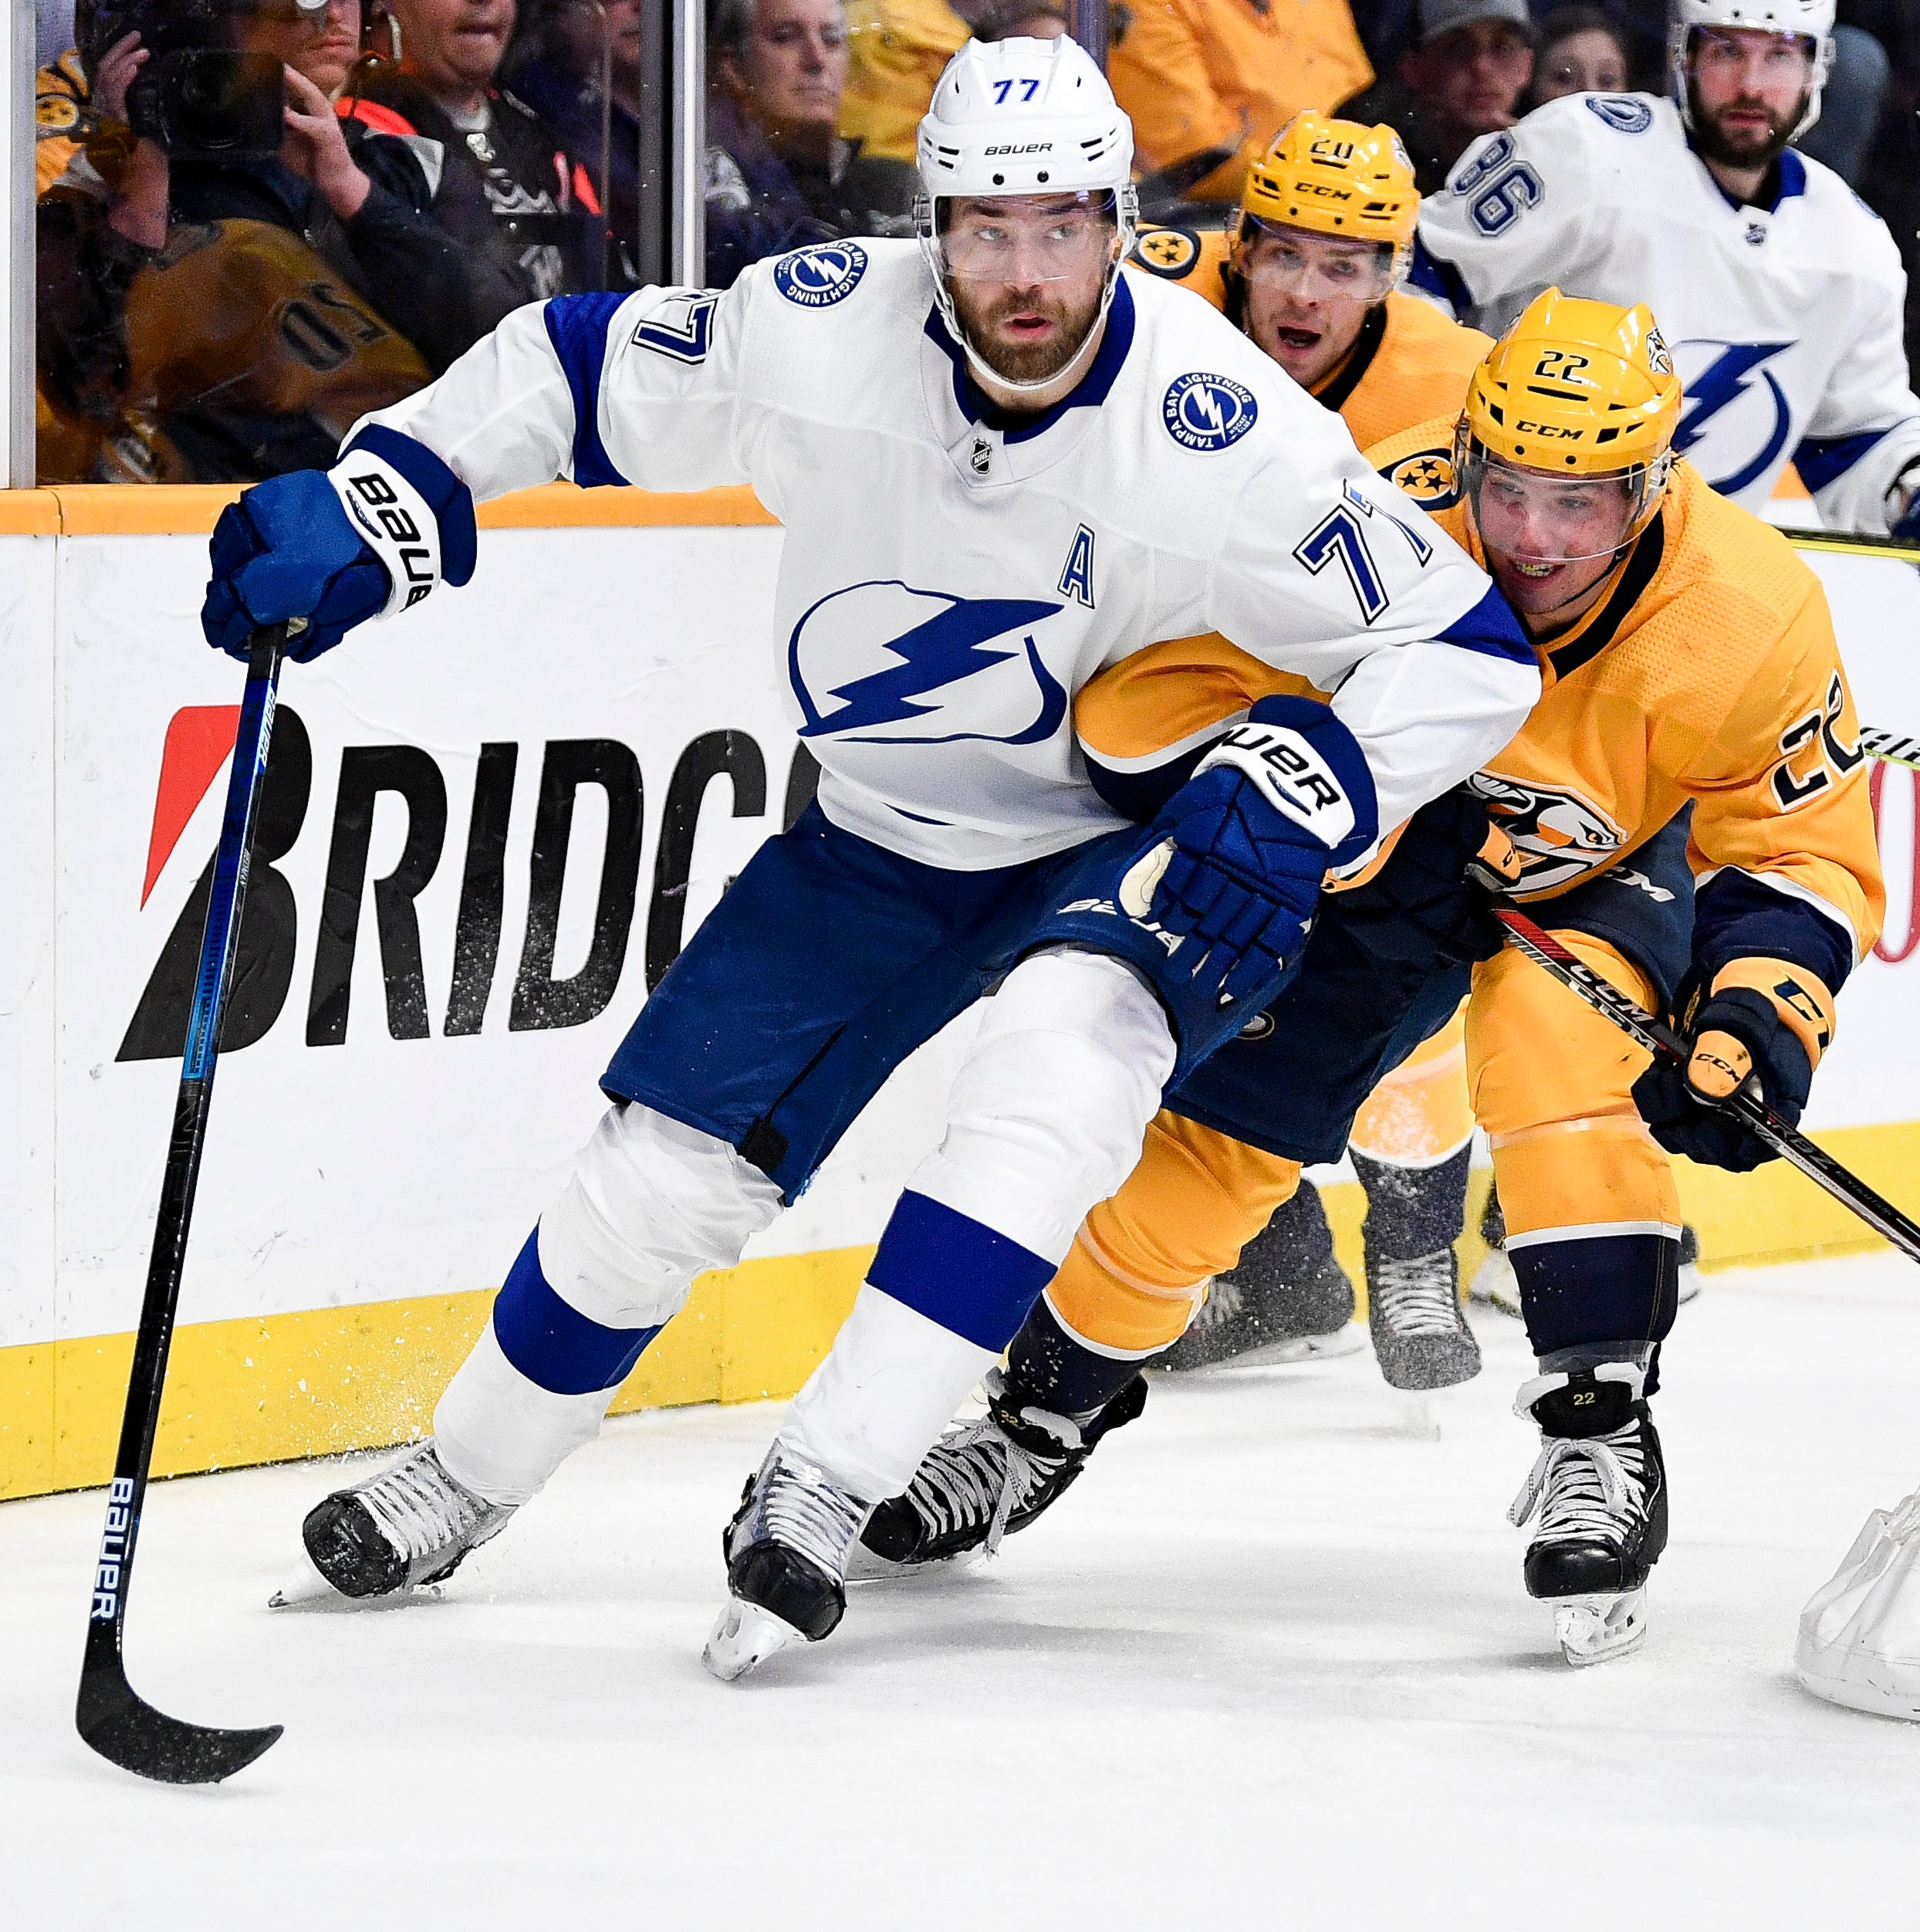 NHL Playoff Matchups: 2019 Stanley Cup Playoffs, first round